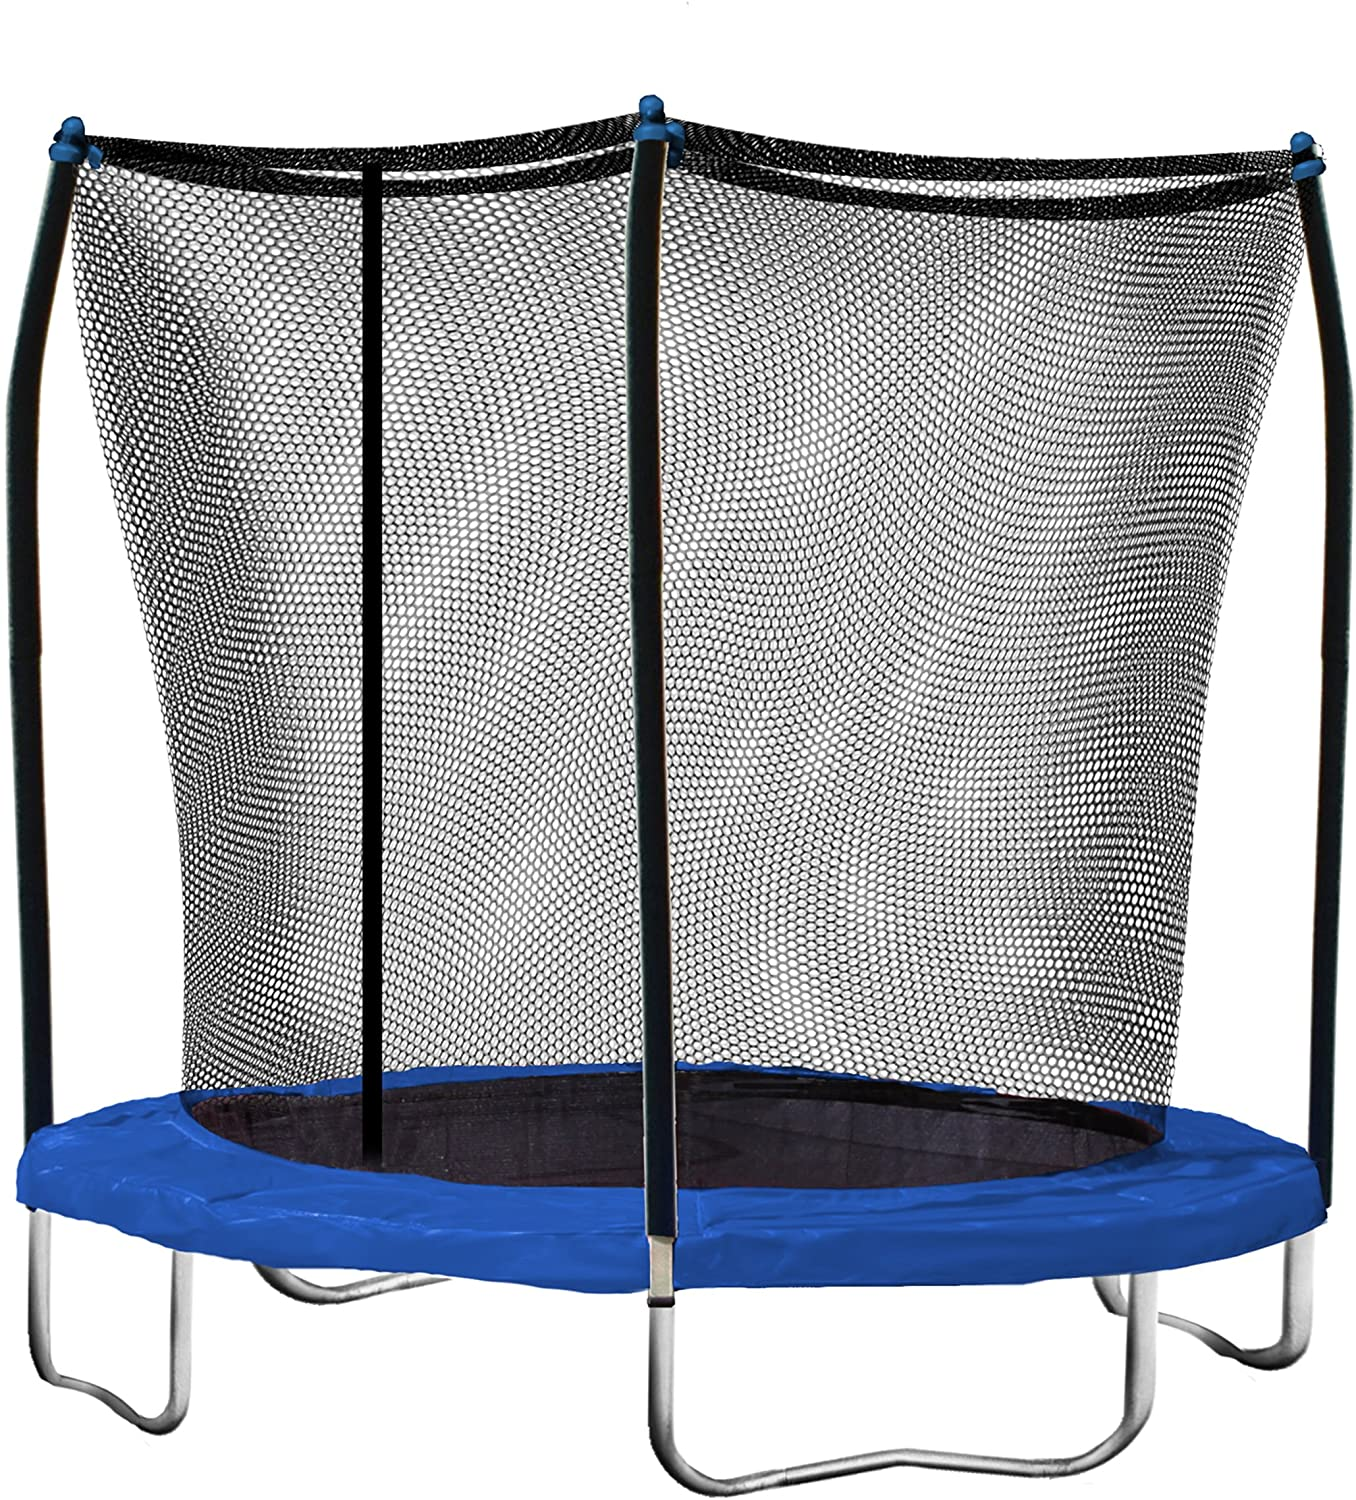 Skywalker Trampolines 8 Ft